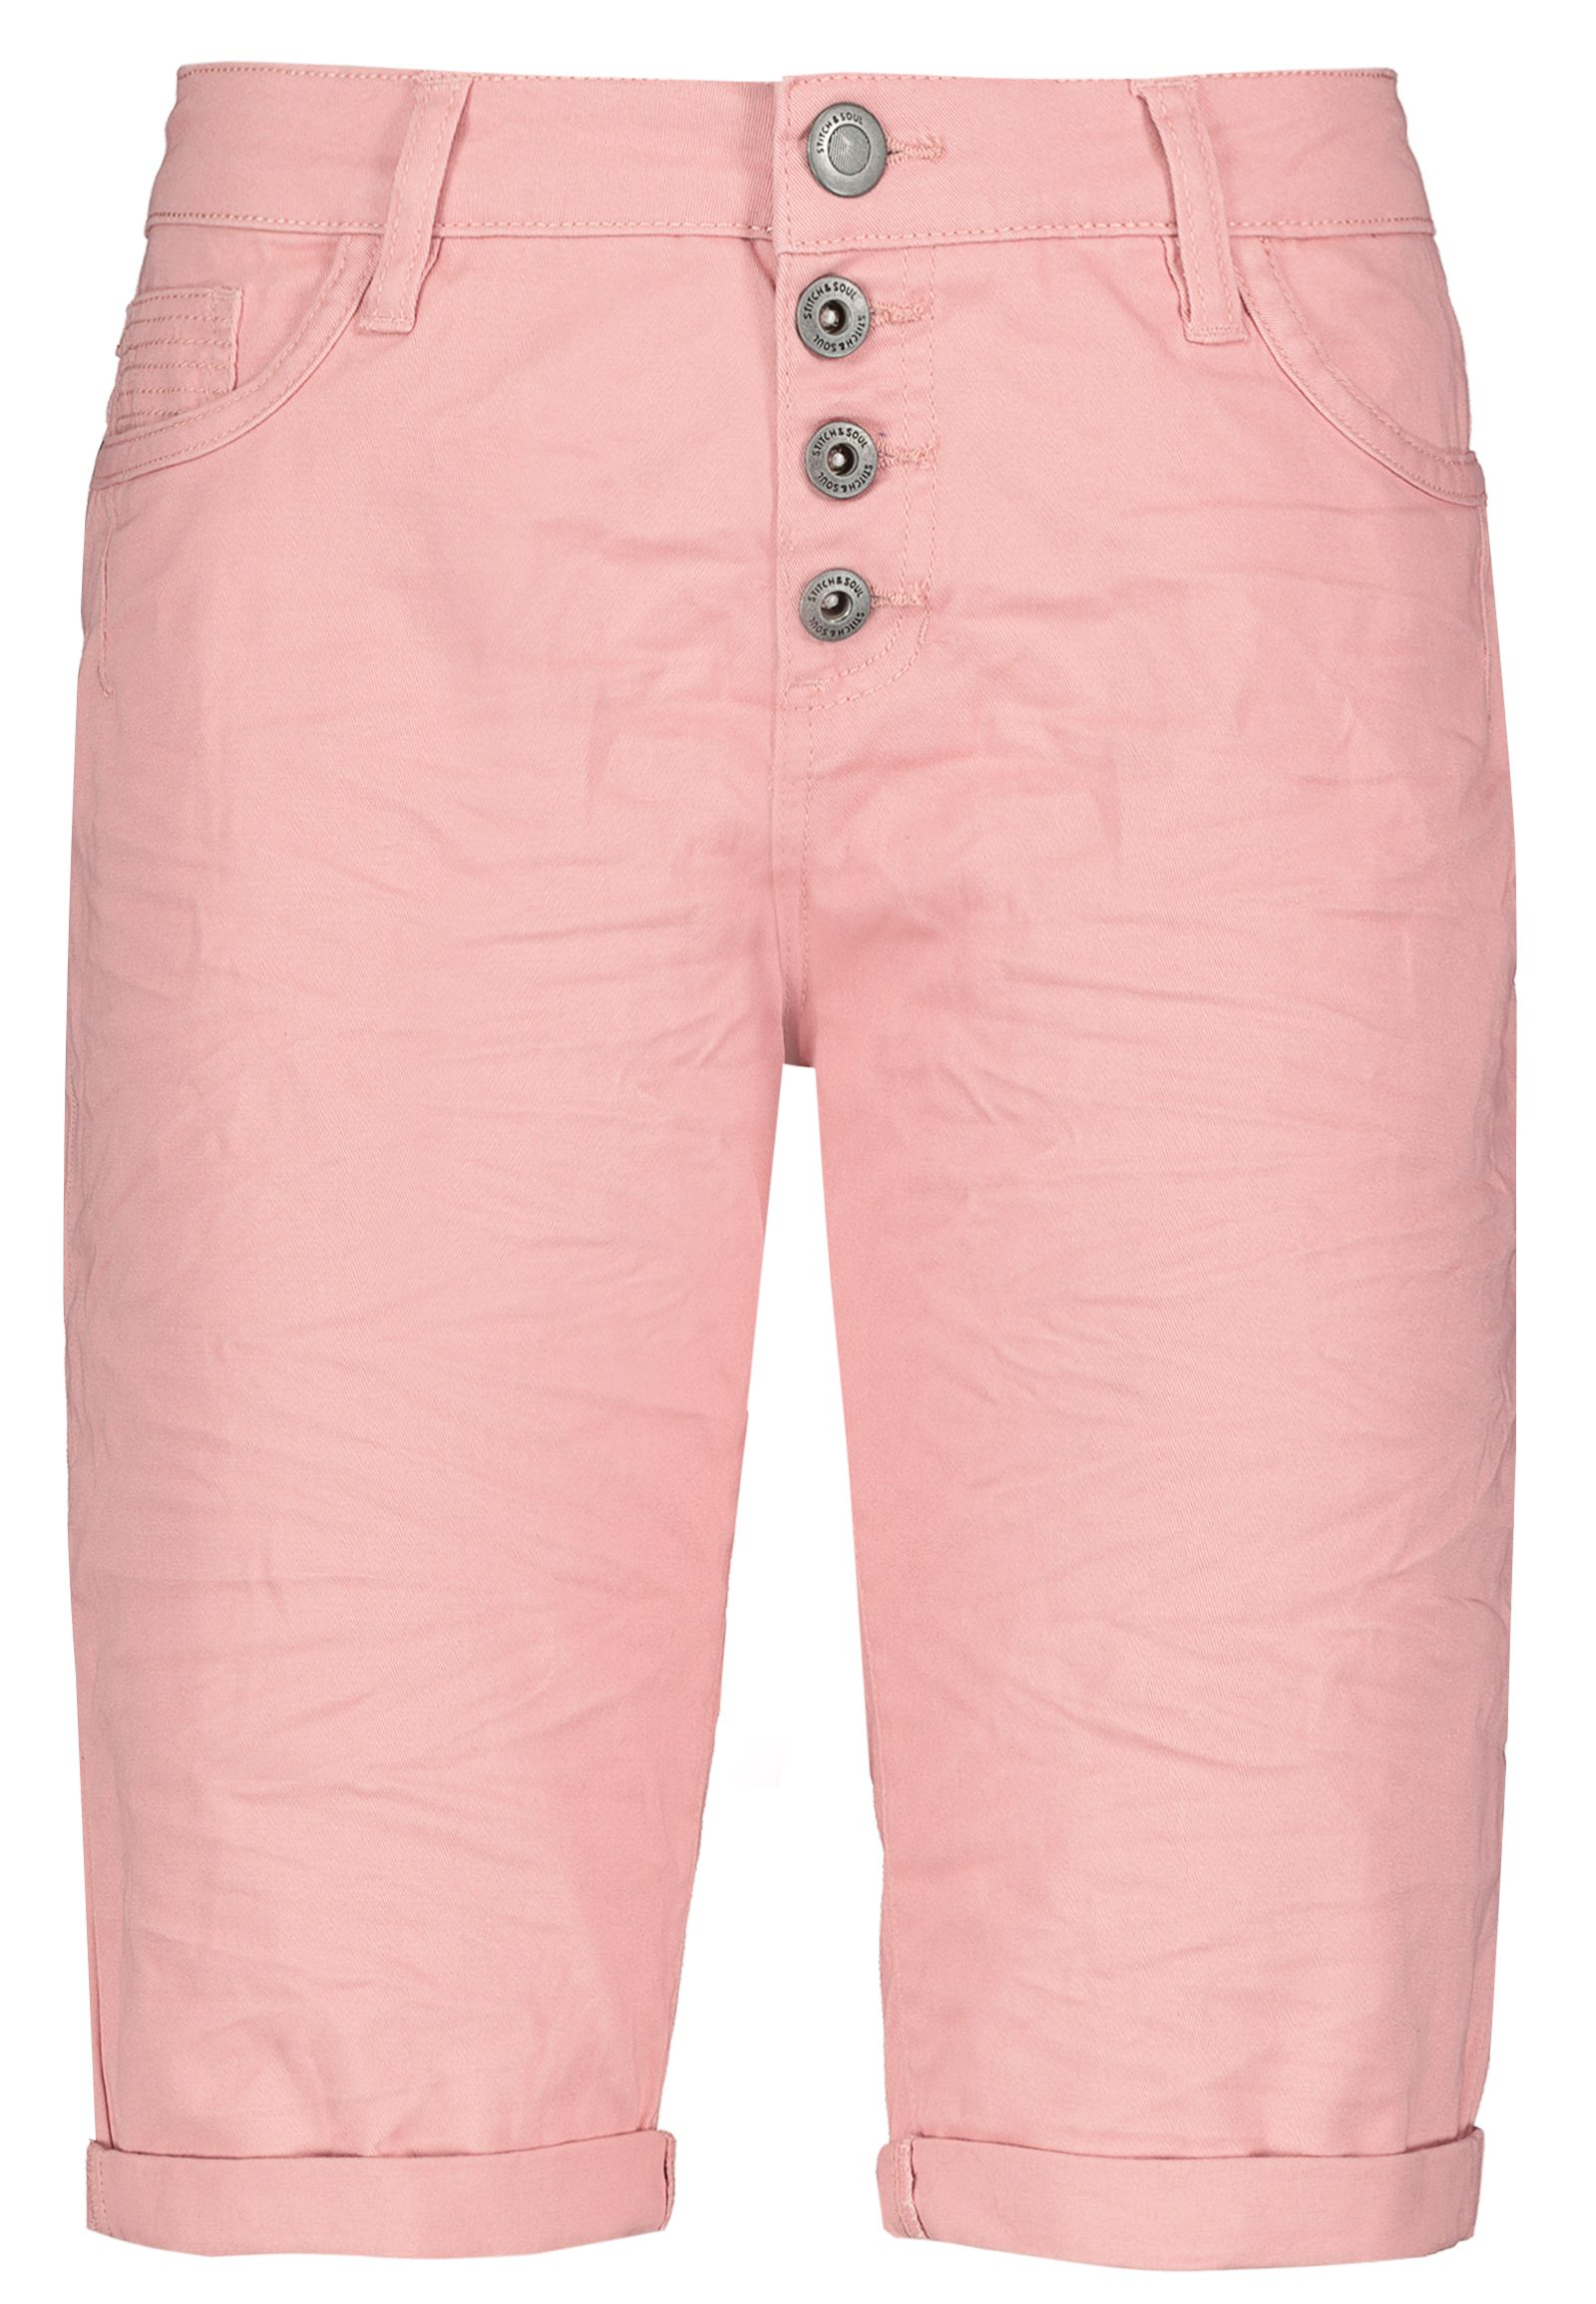 Hosen - 5 Pocket Bermuda mit Aufschlag › Stitch Soul › rosa  - Onlineshop FASHION5